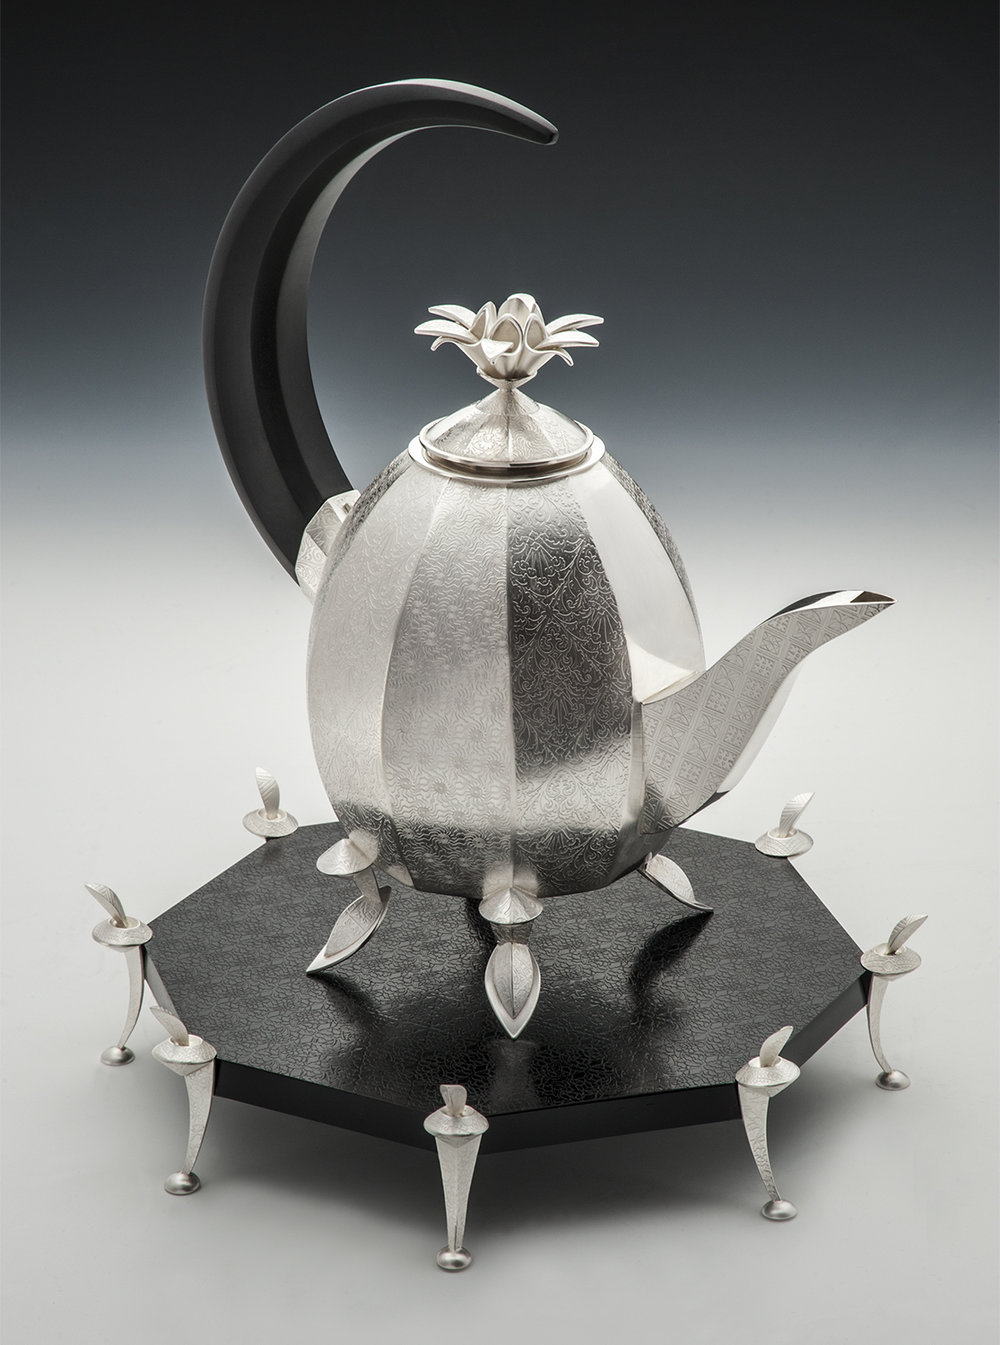 Slippers Teapot  |  2000  |  sterling silver, maple, micarta  |  13 x 10 x 10 inches